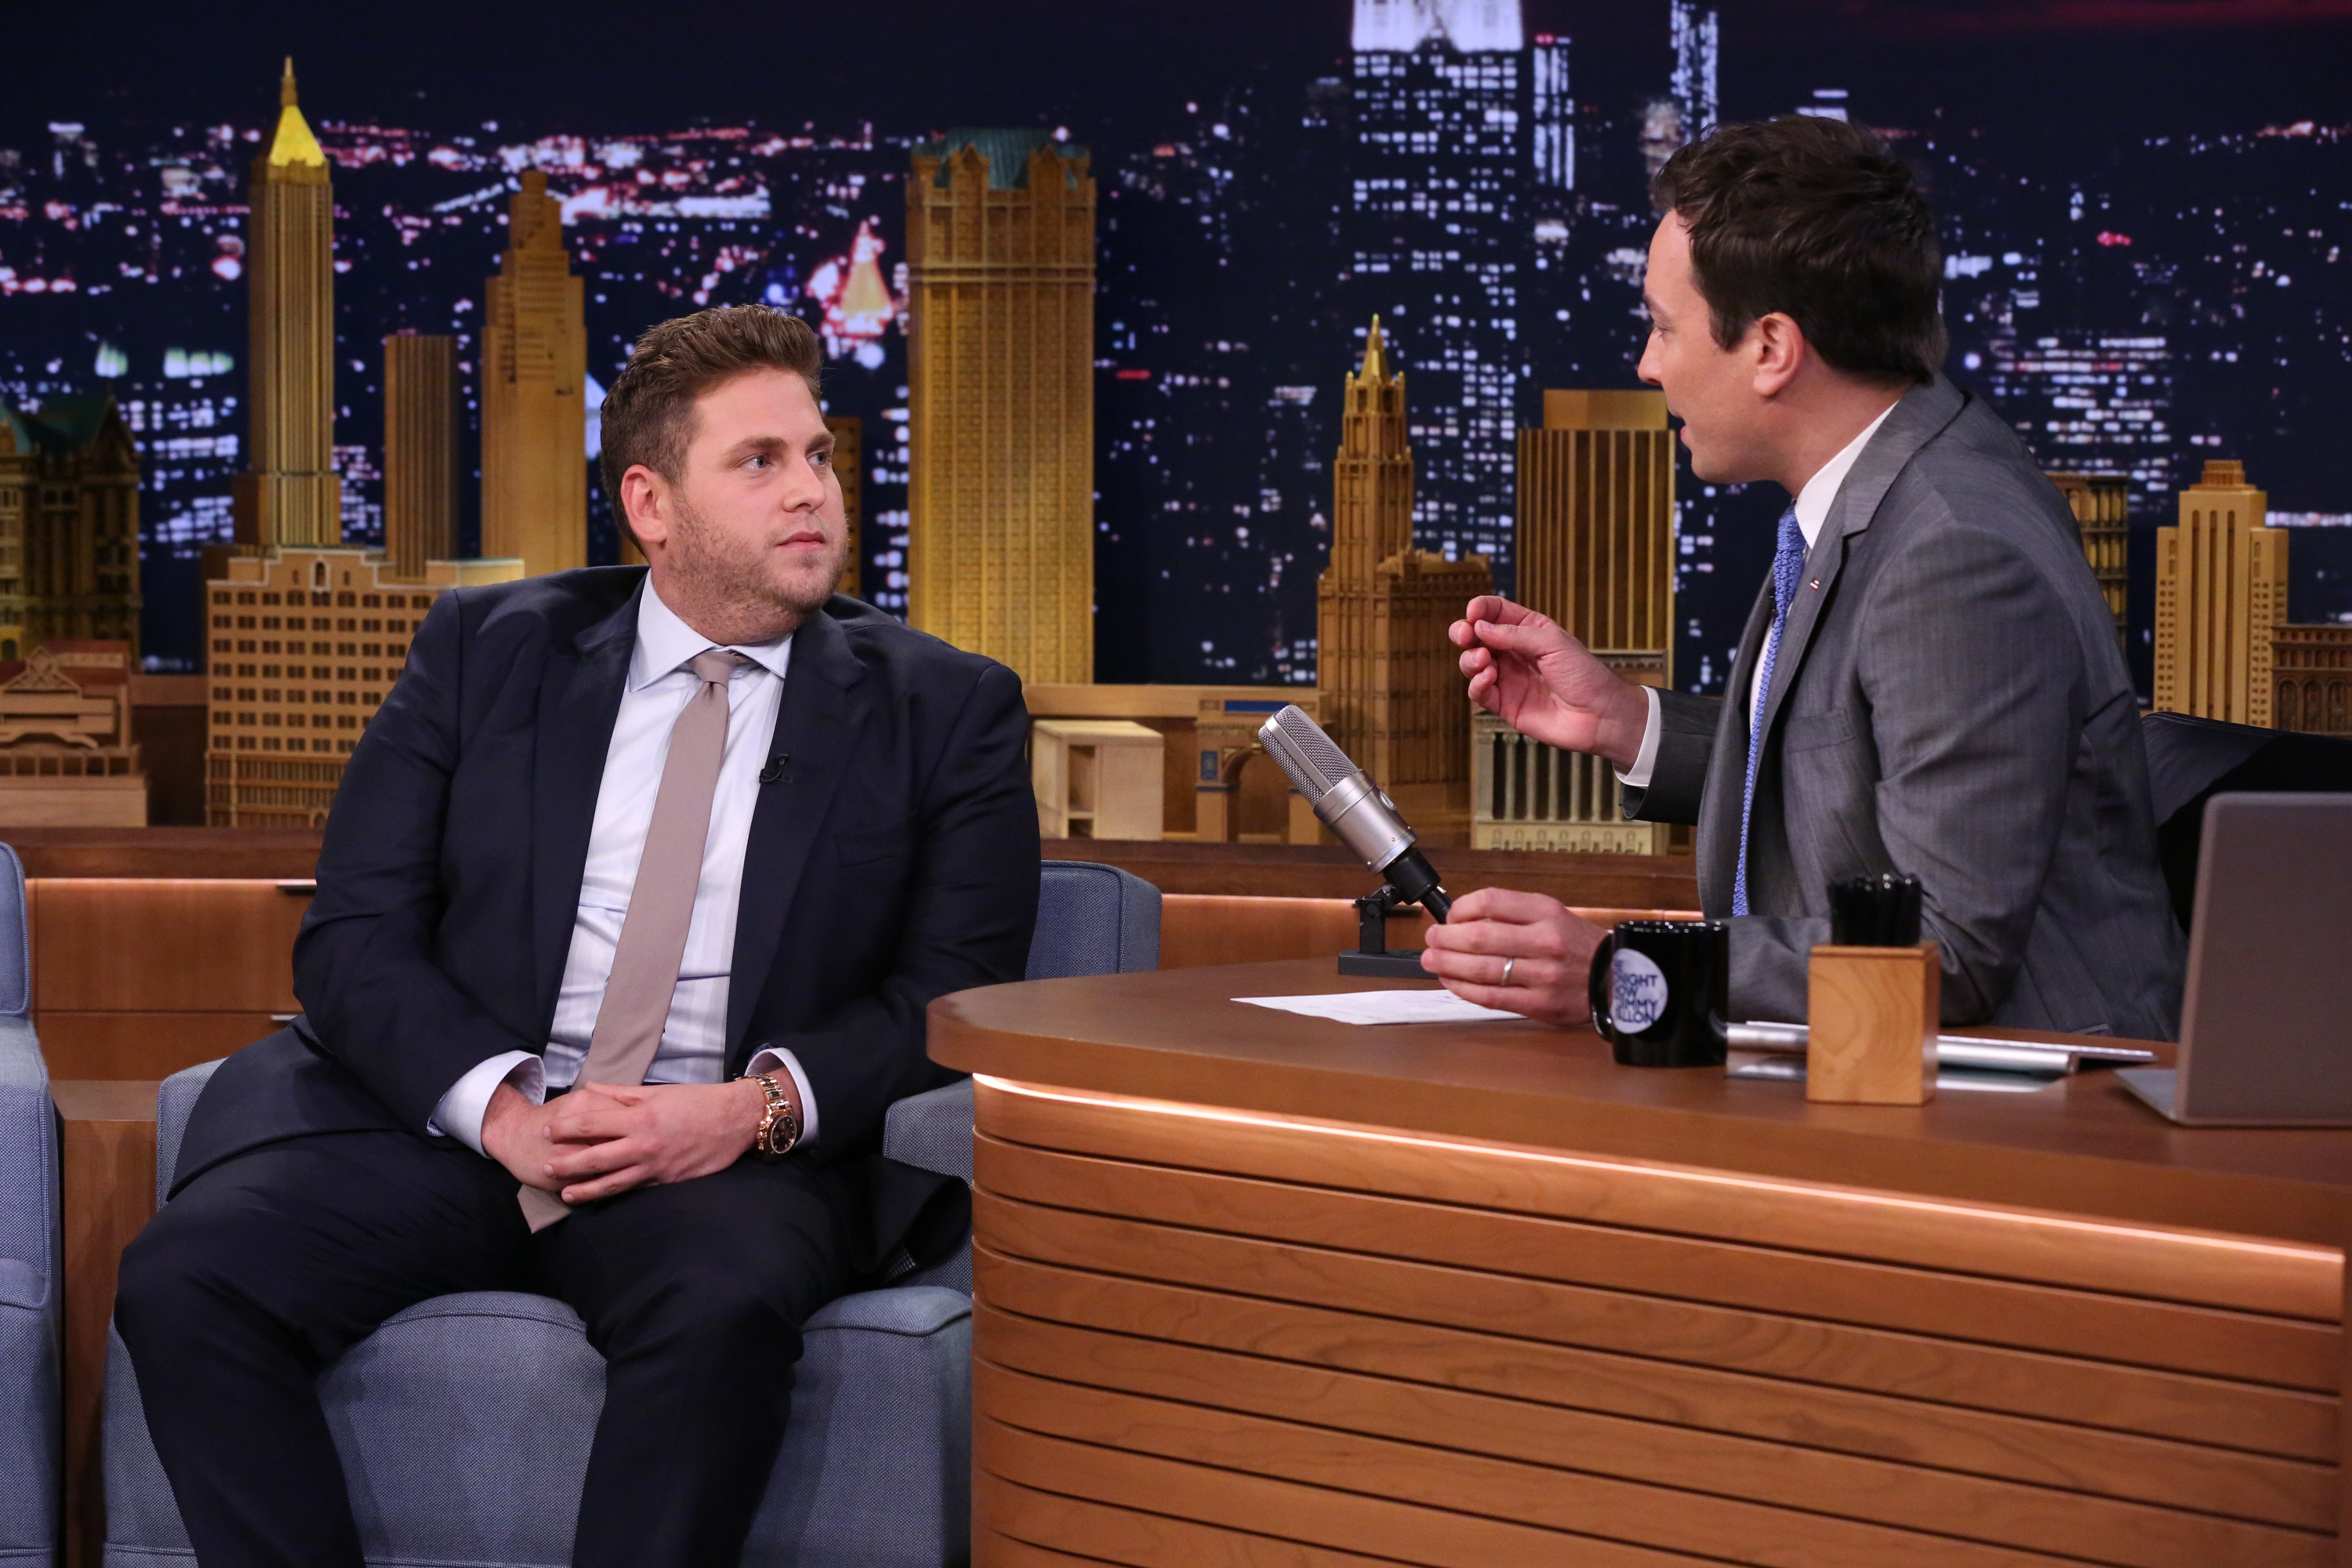 Jonah Hill during an interview with host Jimmy Fallon on June 3, 2014.